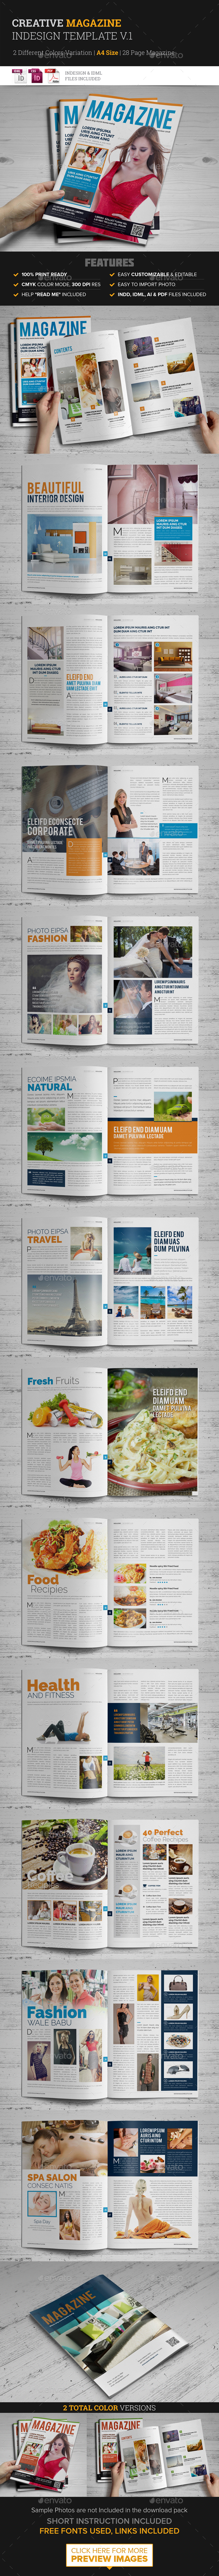 28 Page Magazine InDesign Template v1 - Magazines Print Templates